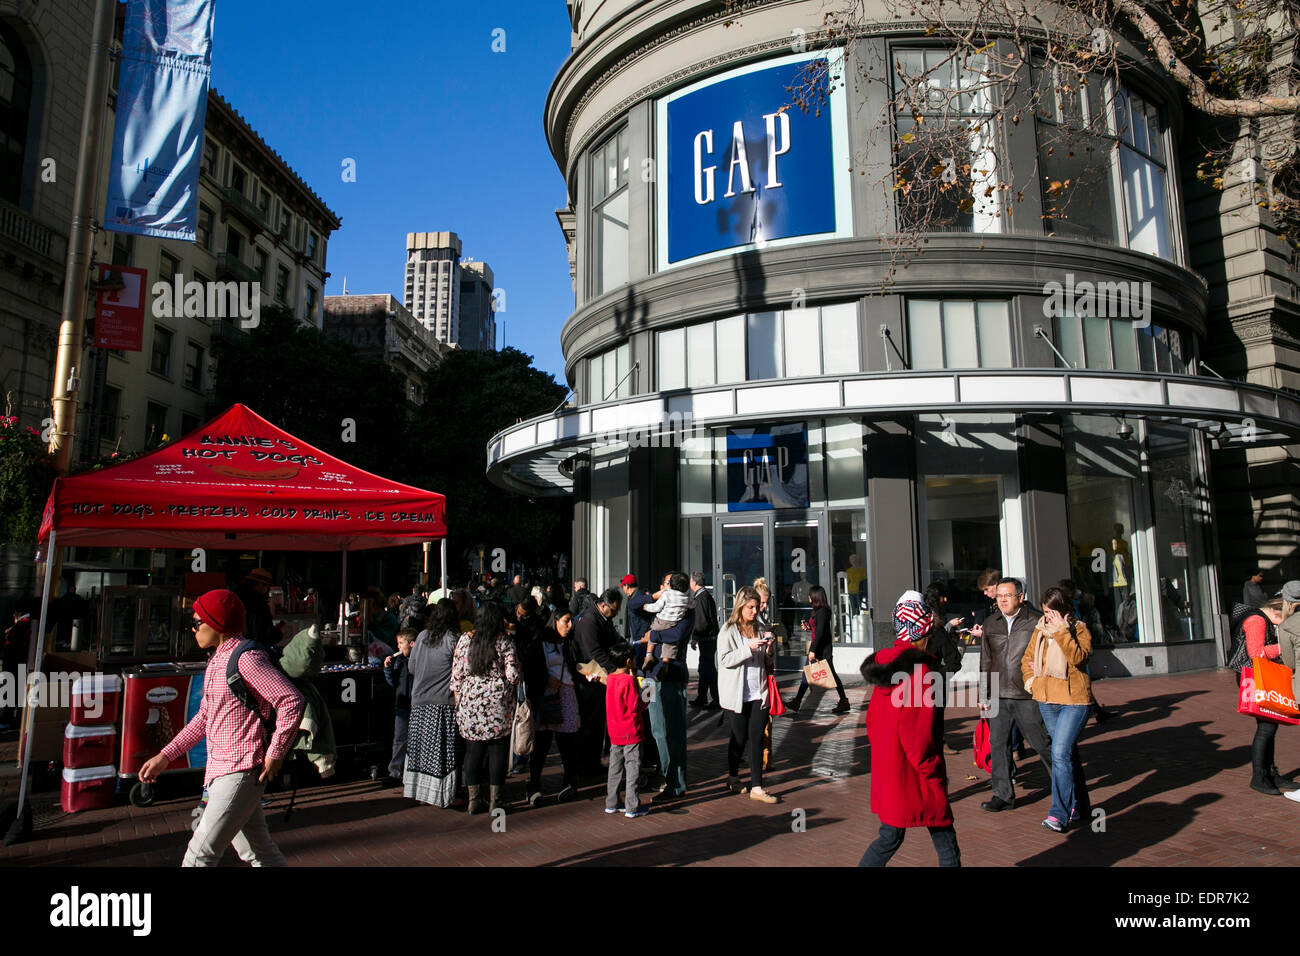 A Gap clothing retail store in downtown San Francisco, California. - Stock Image